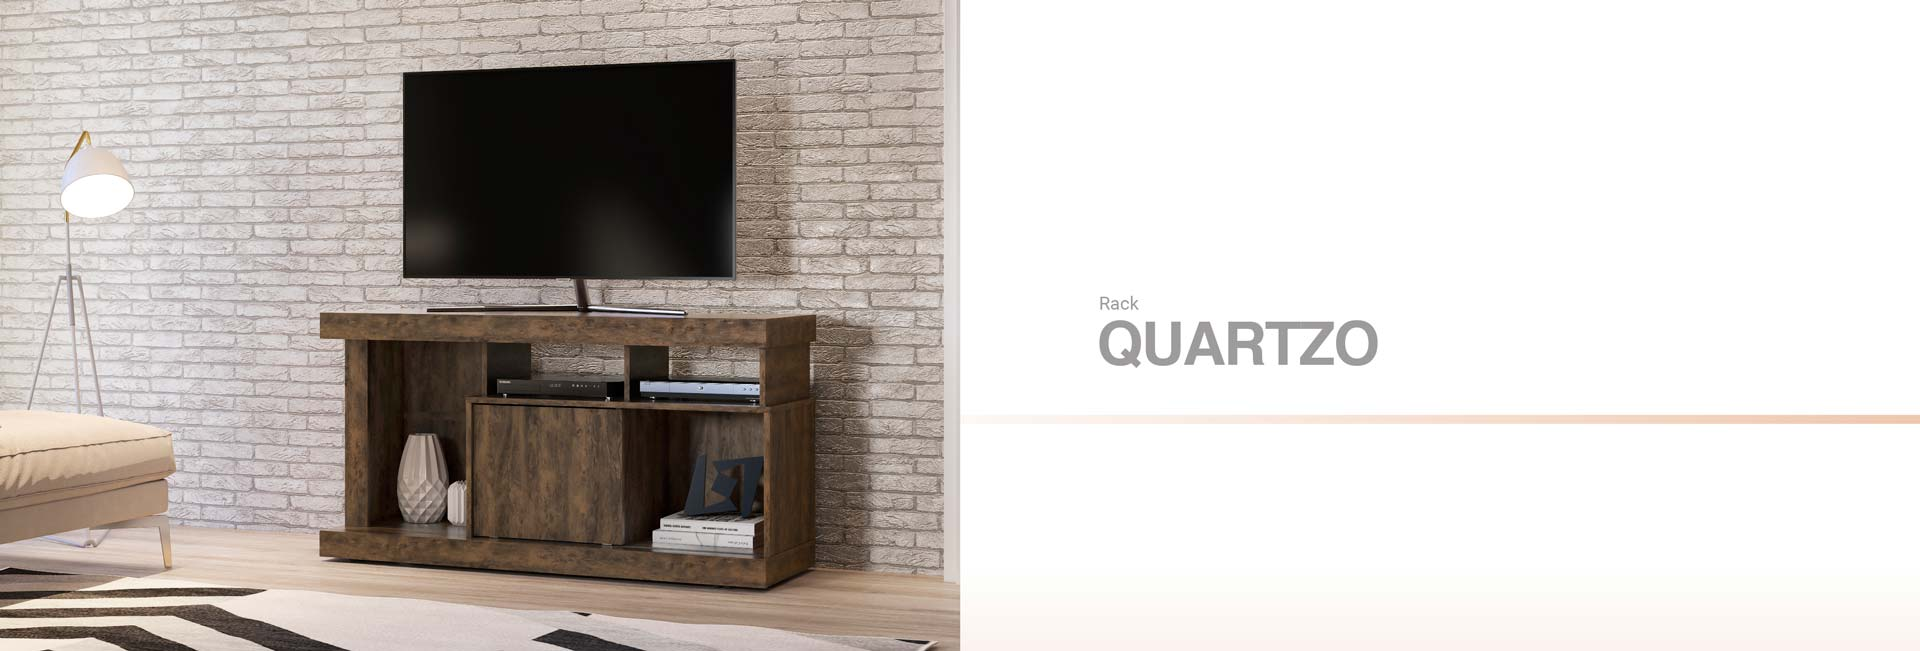 Rack para TV Quartzo